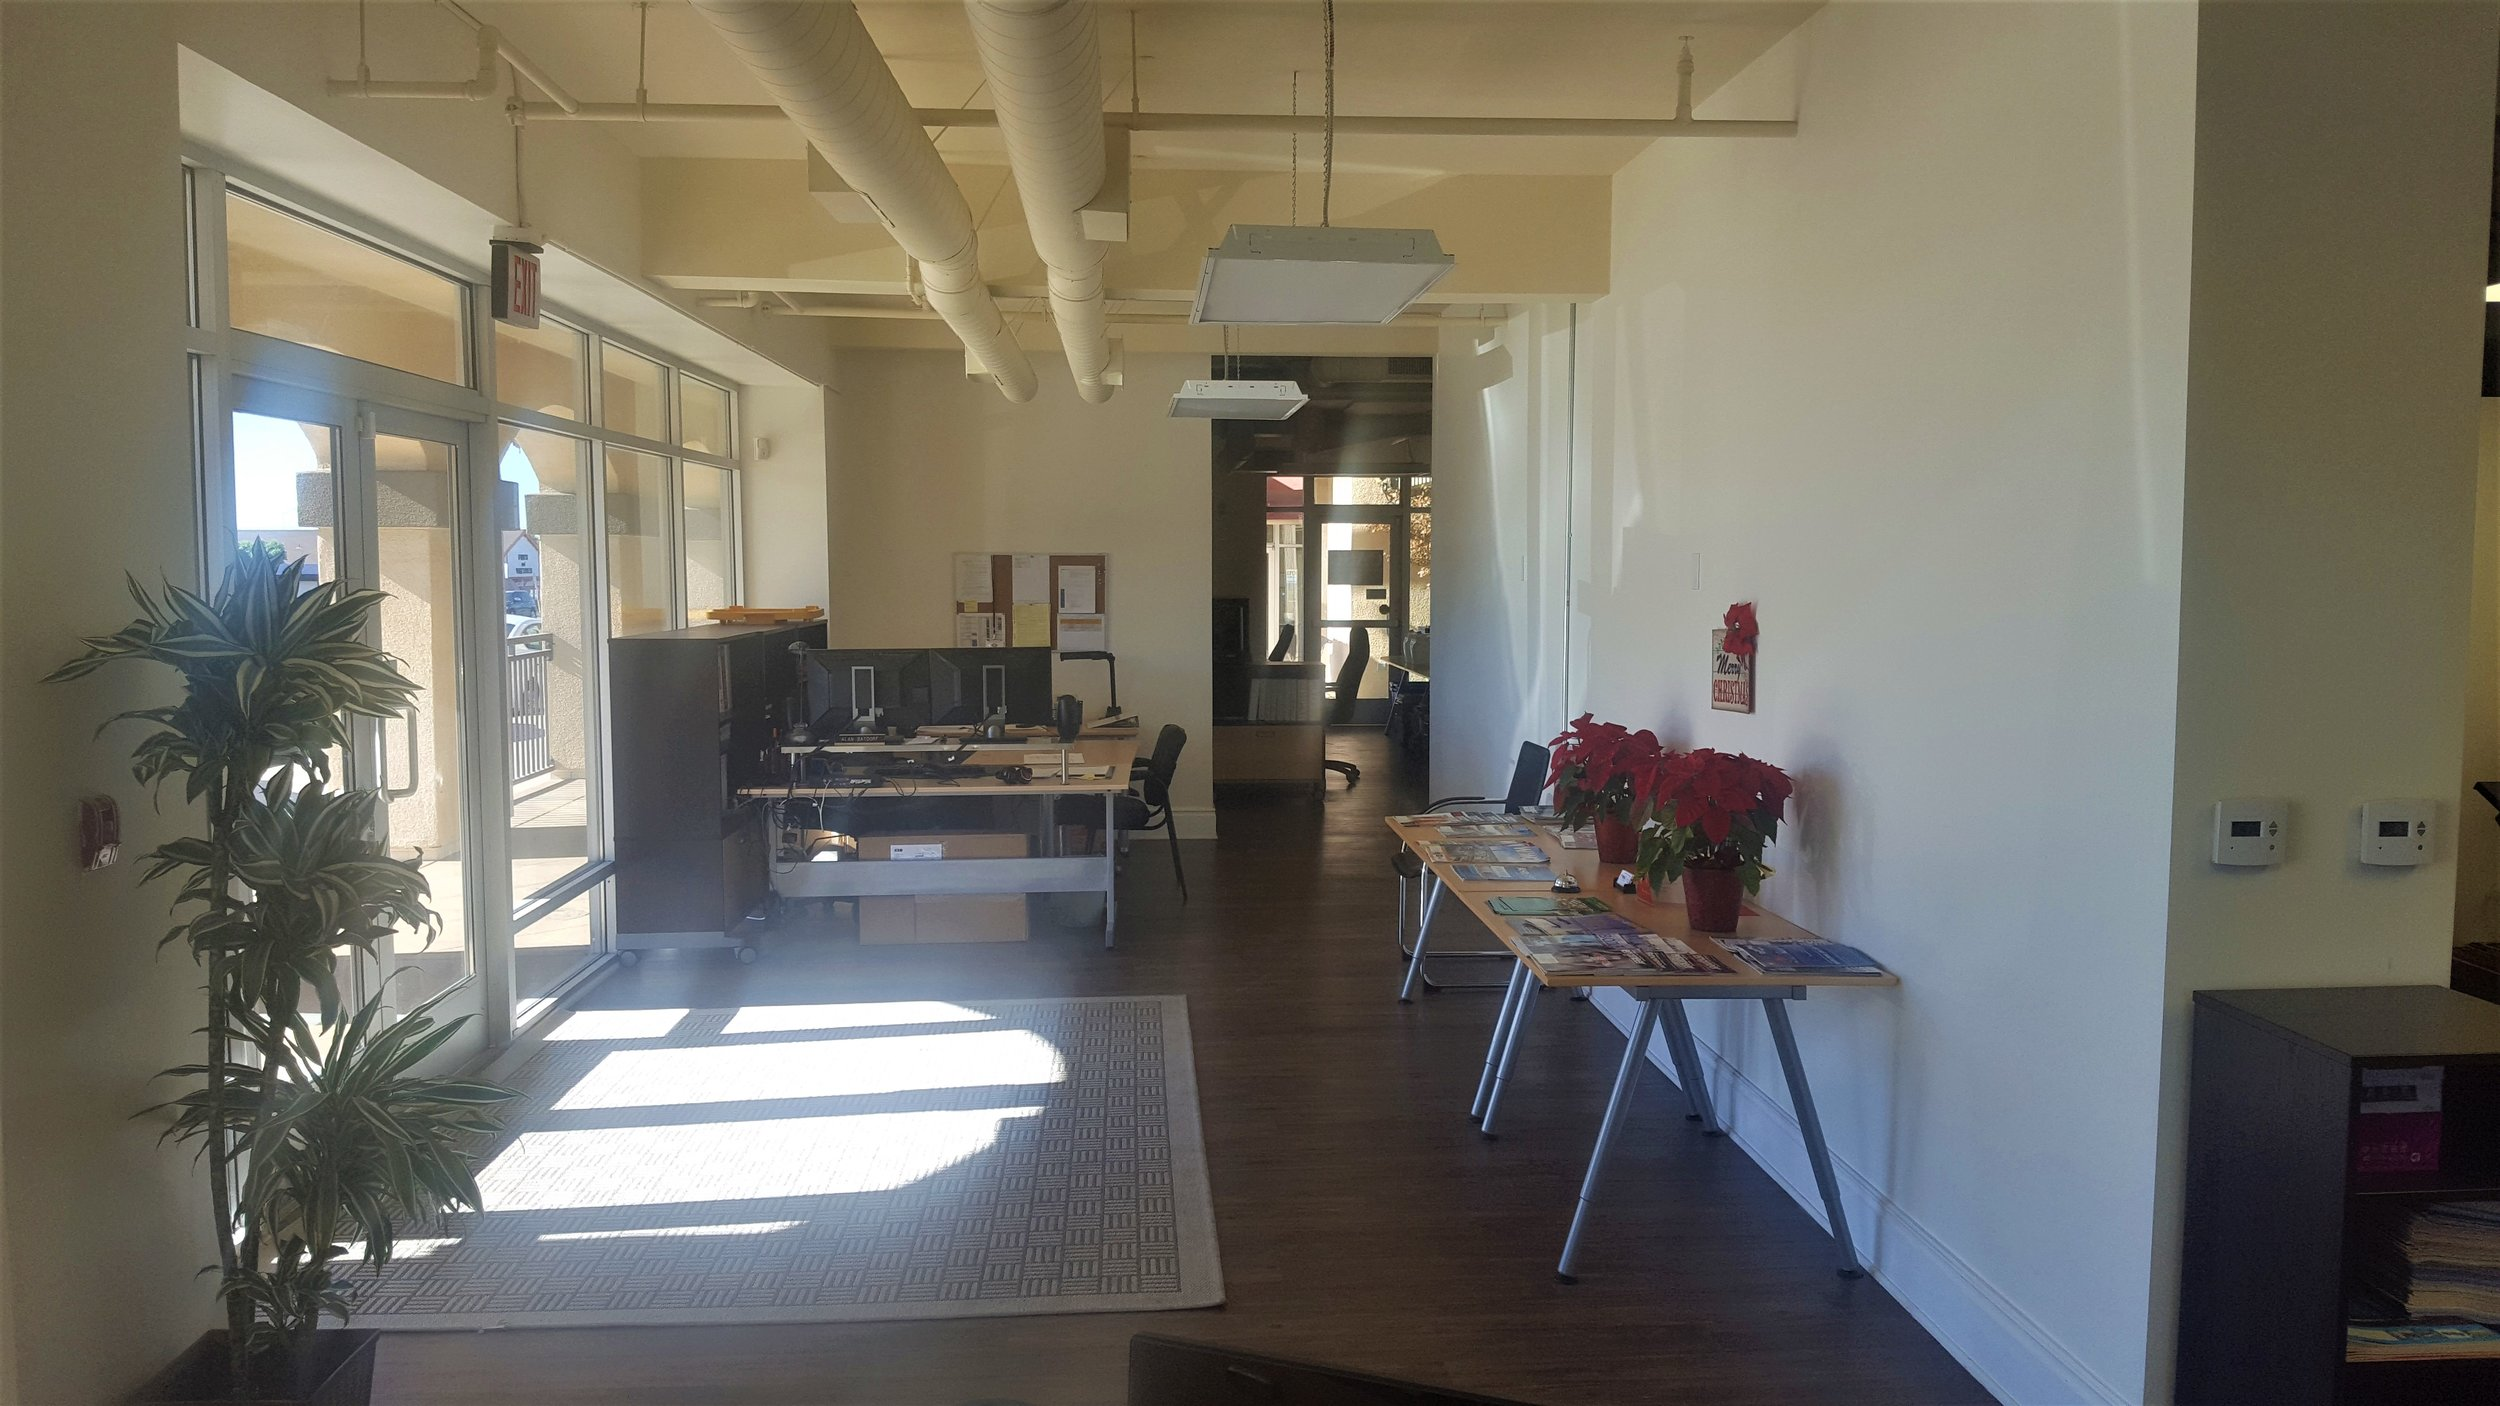 Picture of the lobby in the Glendora California office.